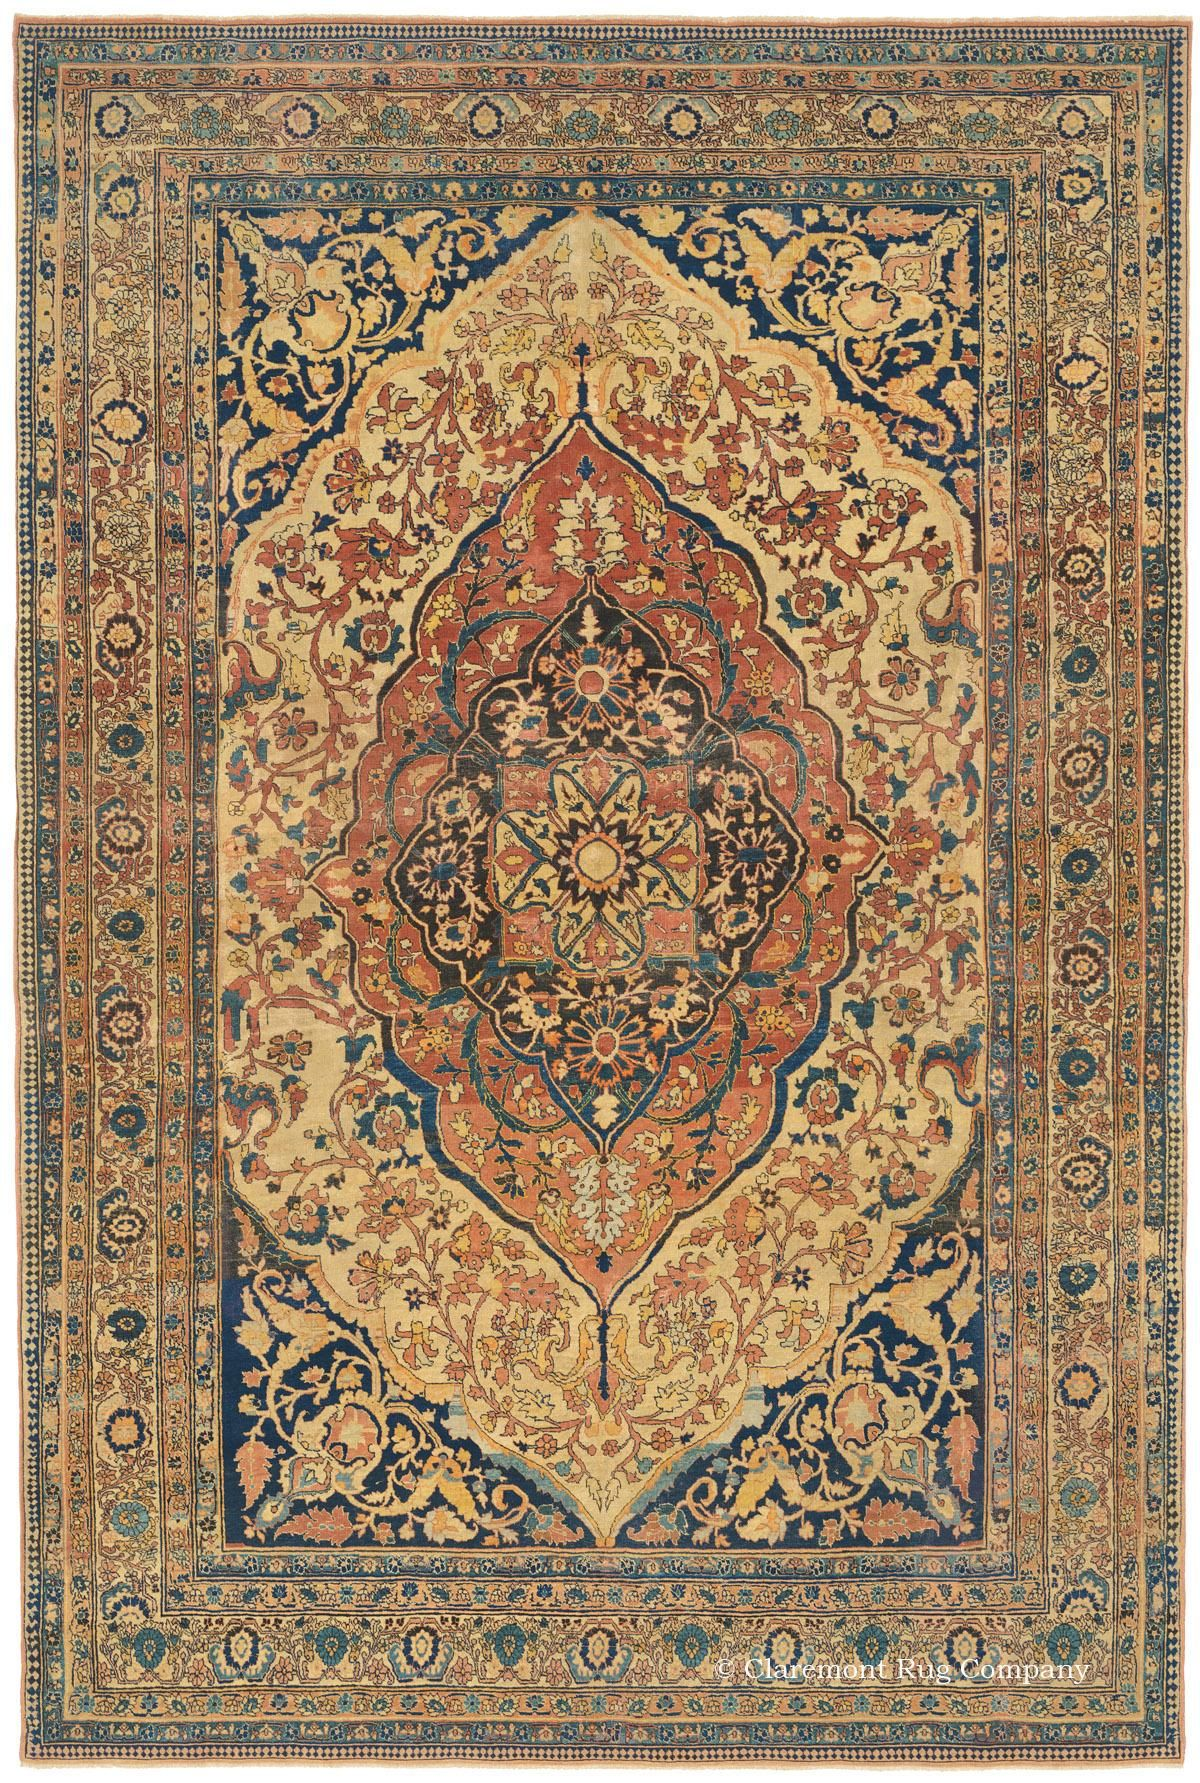 Simple Persian Rugs Google Search Antique Persian Carpet Persian Rug Designs Antique Carpets